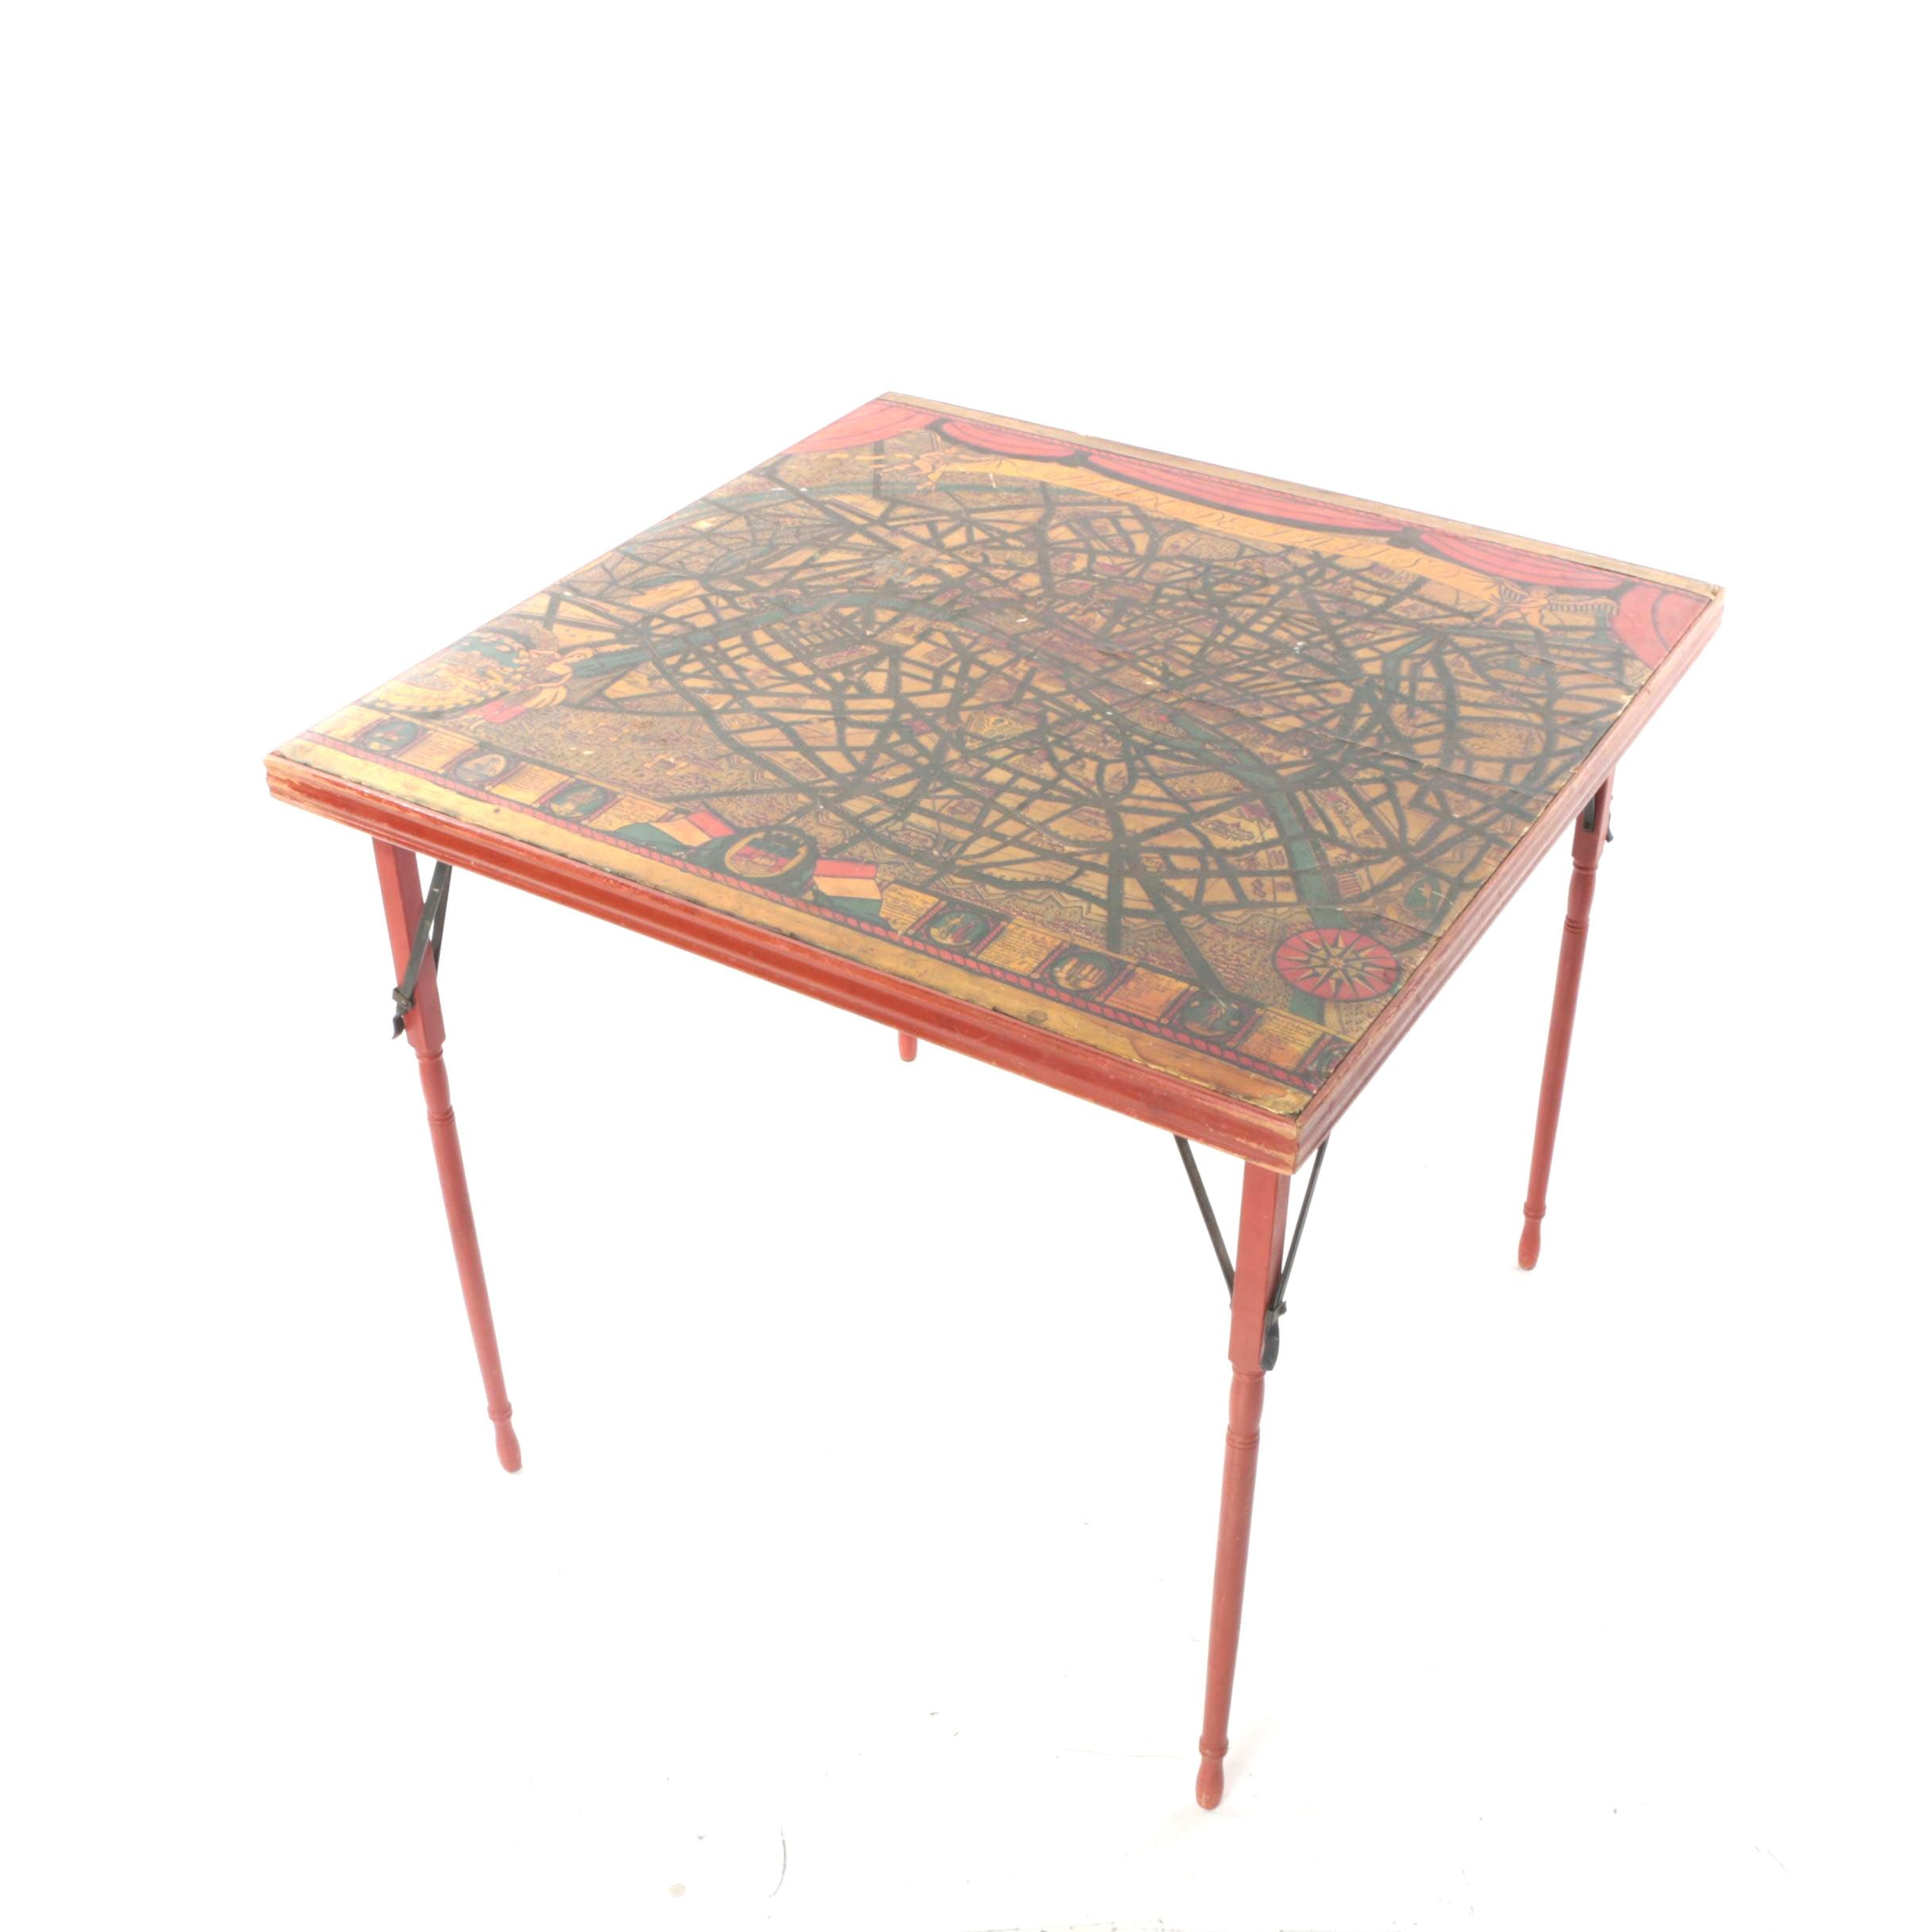 Vintage Painted Parisian Motif Folding Table by Ferguson Brothers Manufacturing